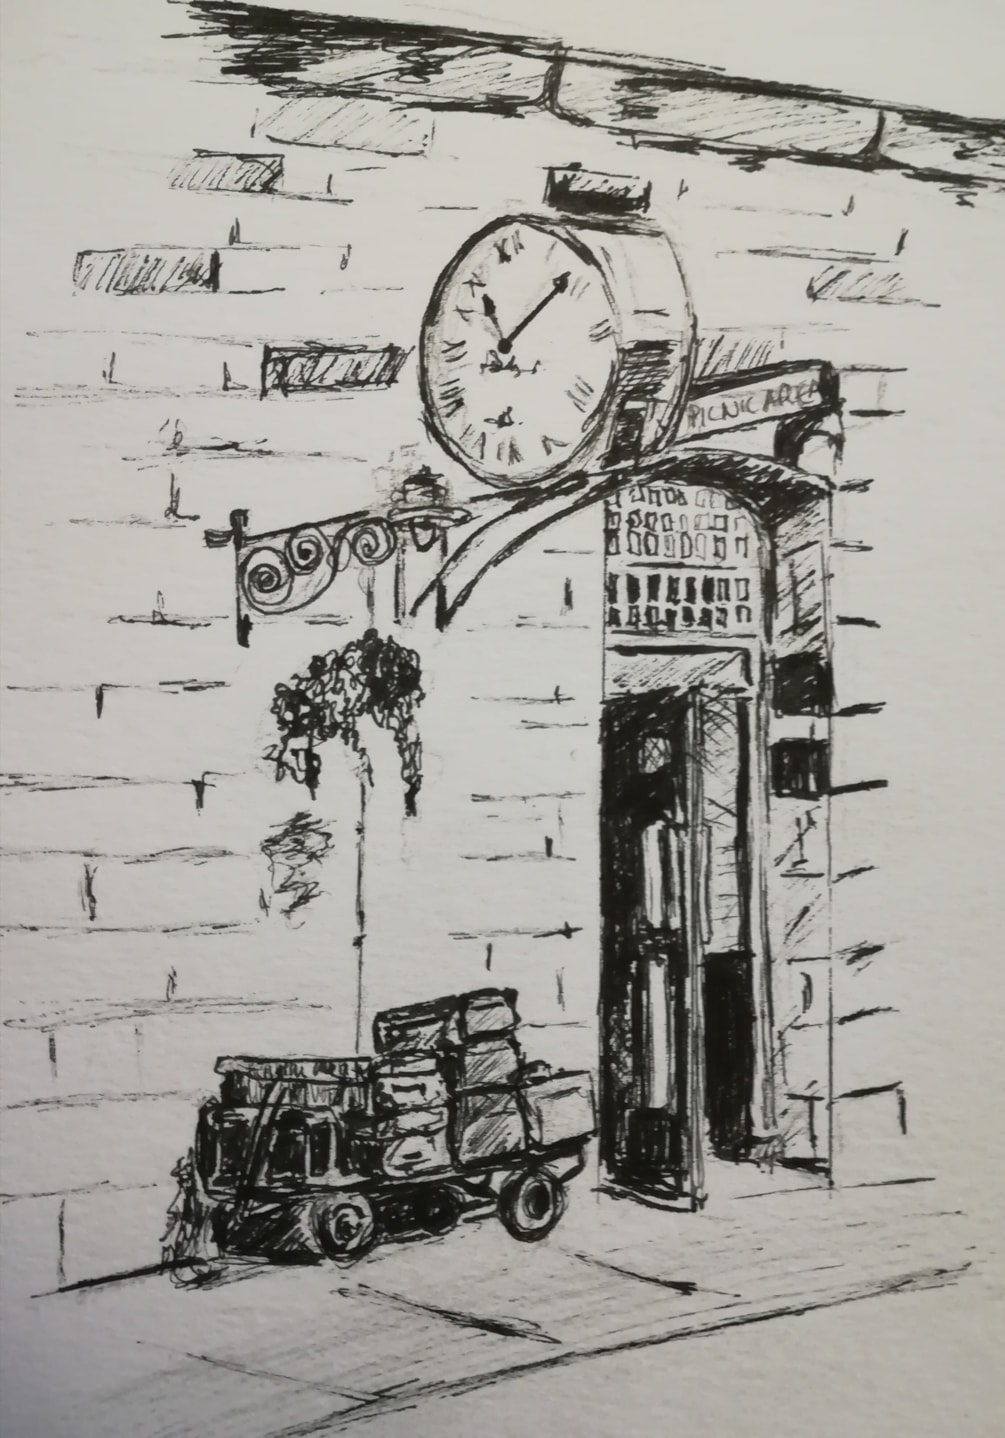 Pickering Station Clock